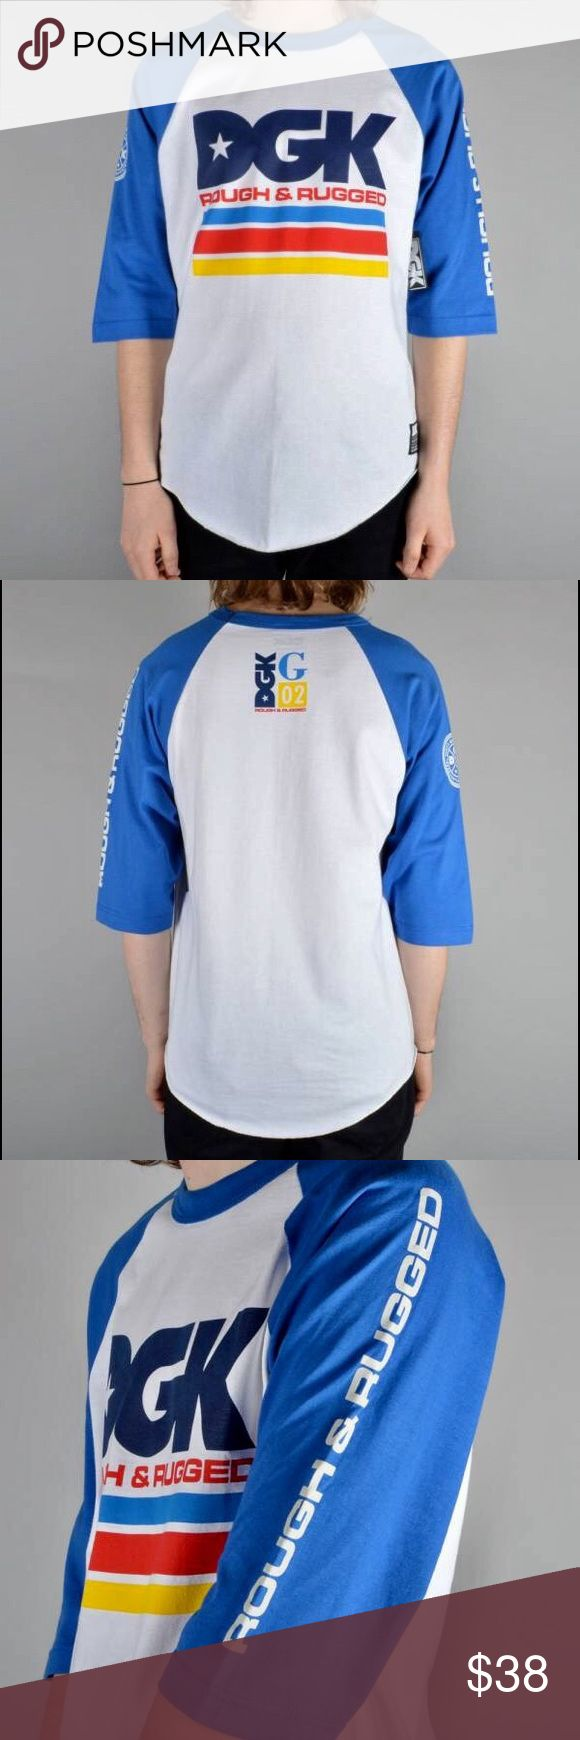 DGK Stacked 3/4 Sleeve Raglan  L/S T-Shirt DGK Stacked 3/4 Sleeve Raglan L/S T-Shirt White / Royal: The DGK Stacked Raglan T-shirt is a Rad new 3/4 length baseball style tee from DGK Skateboards. Featuring a large front chest DGK print (as pictured), printed sleeves and logo screened at back below neck (as pictured), 3/4 sleeves, regular fit, color: white / royal blue,stitched brand tag - hem, fits true to size, excellent condition, made from 100% Cotton, crew neck, tagless collar for…